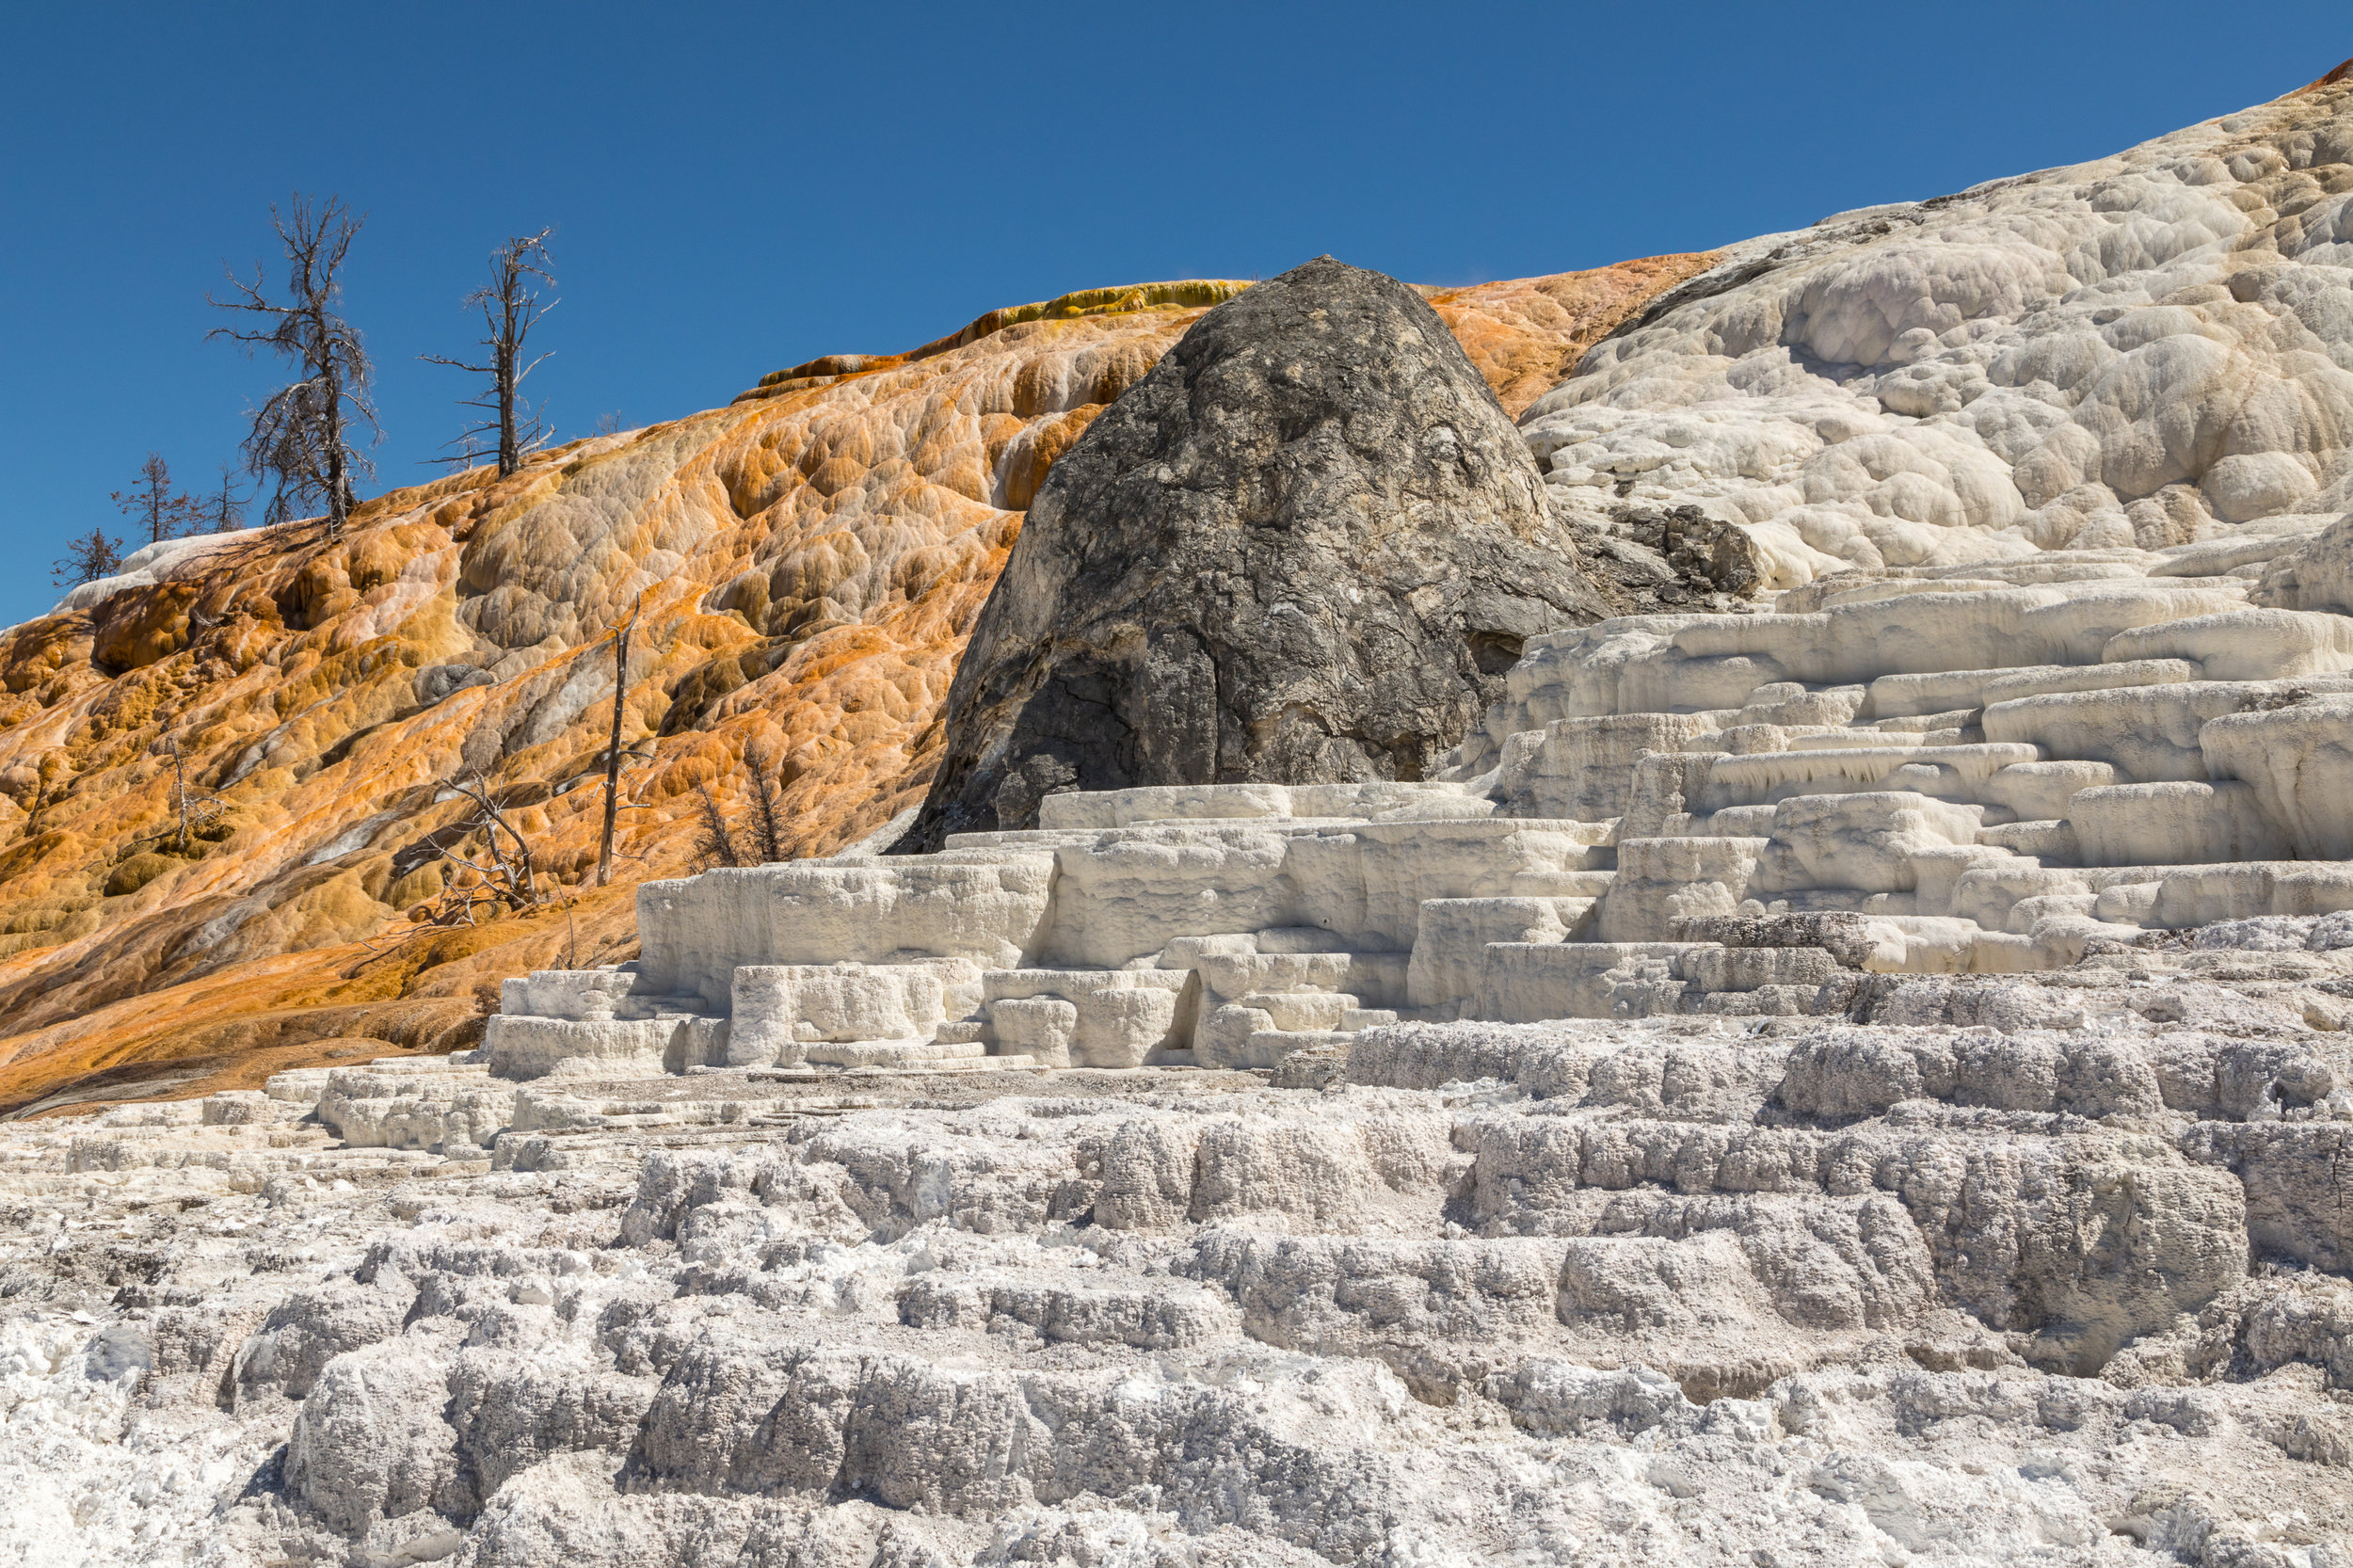 Mammoth Hot Springs, Yellowstone National Park, Image # 7477